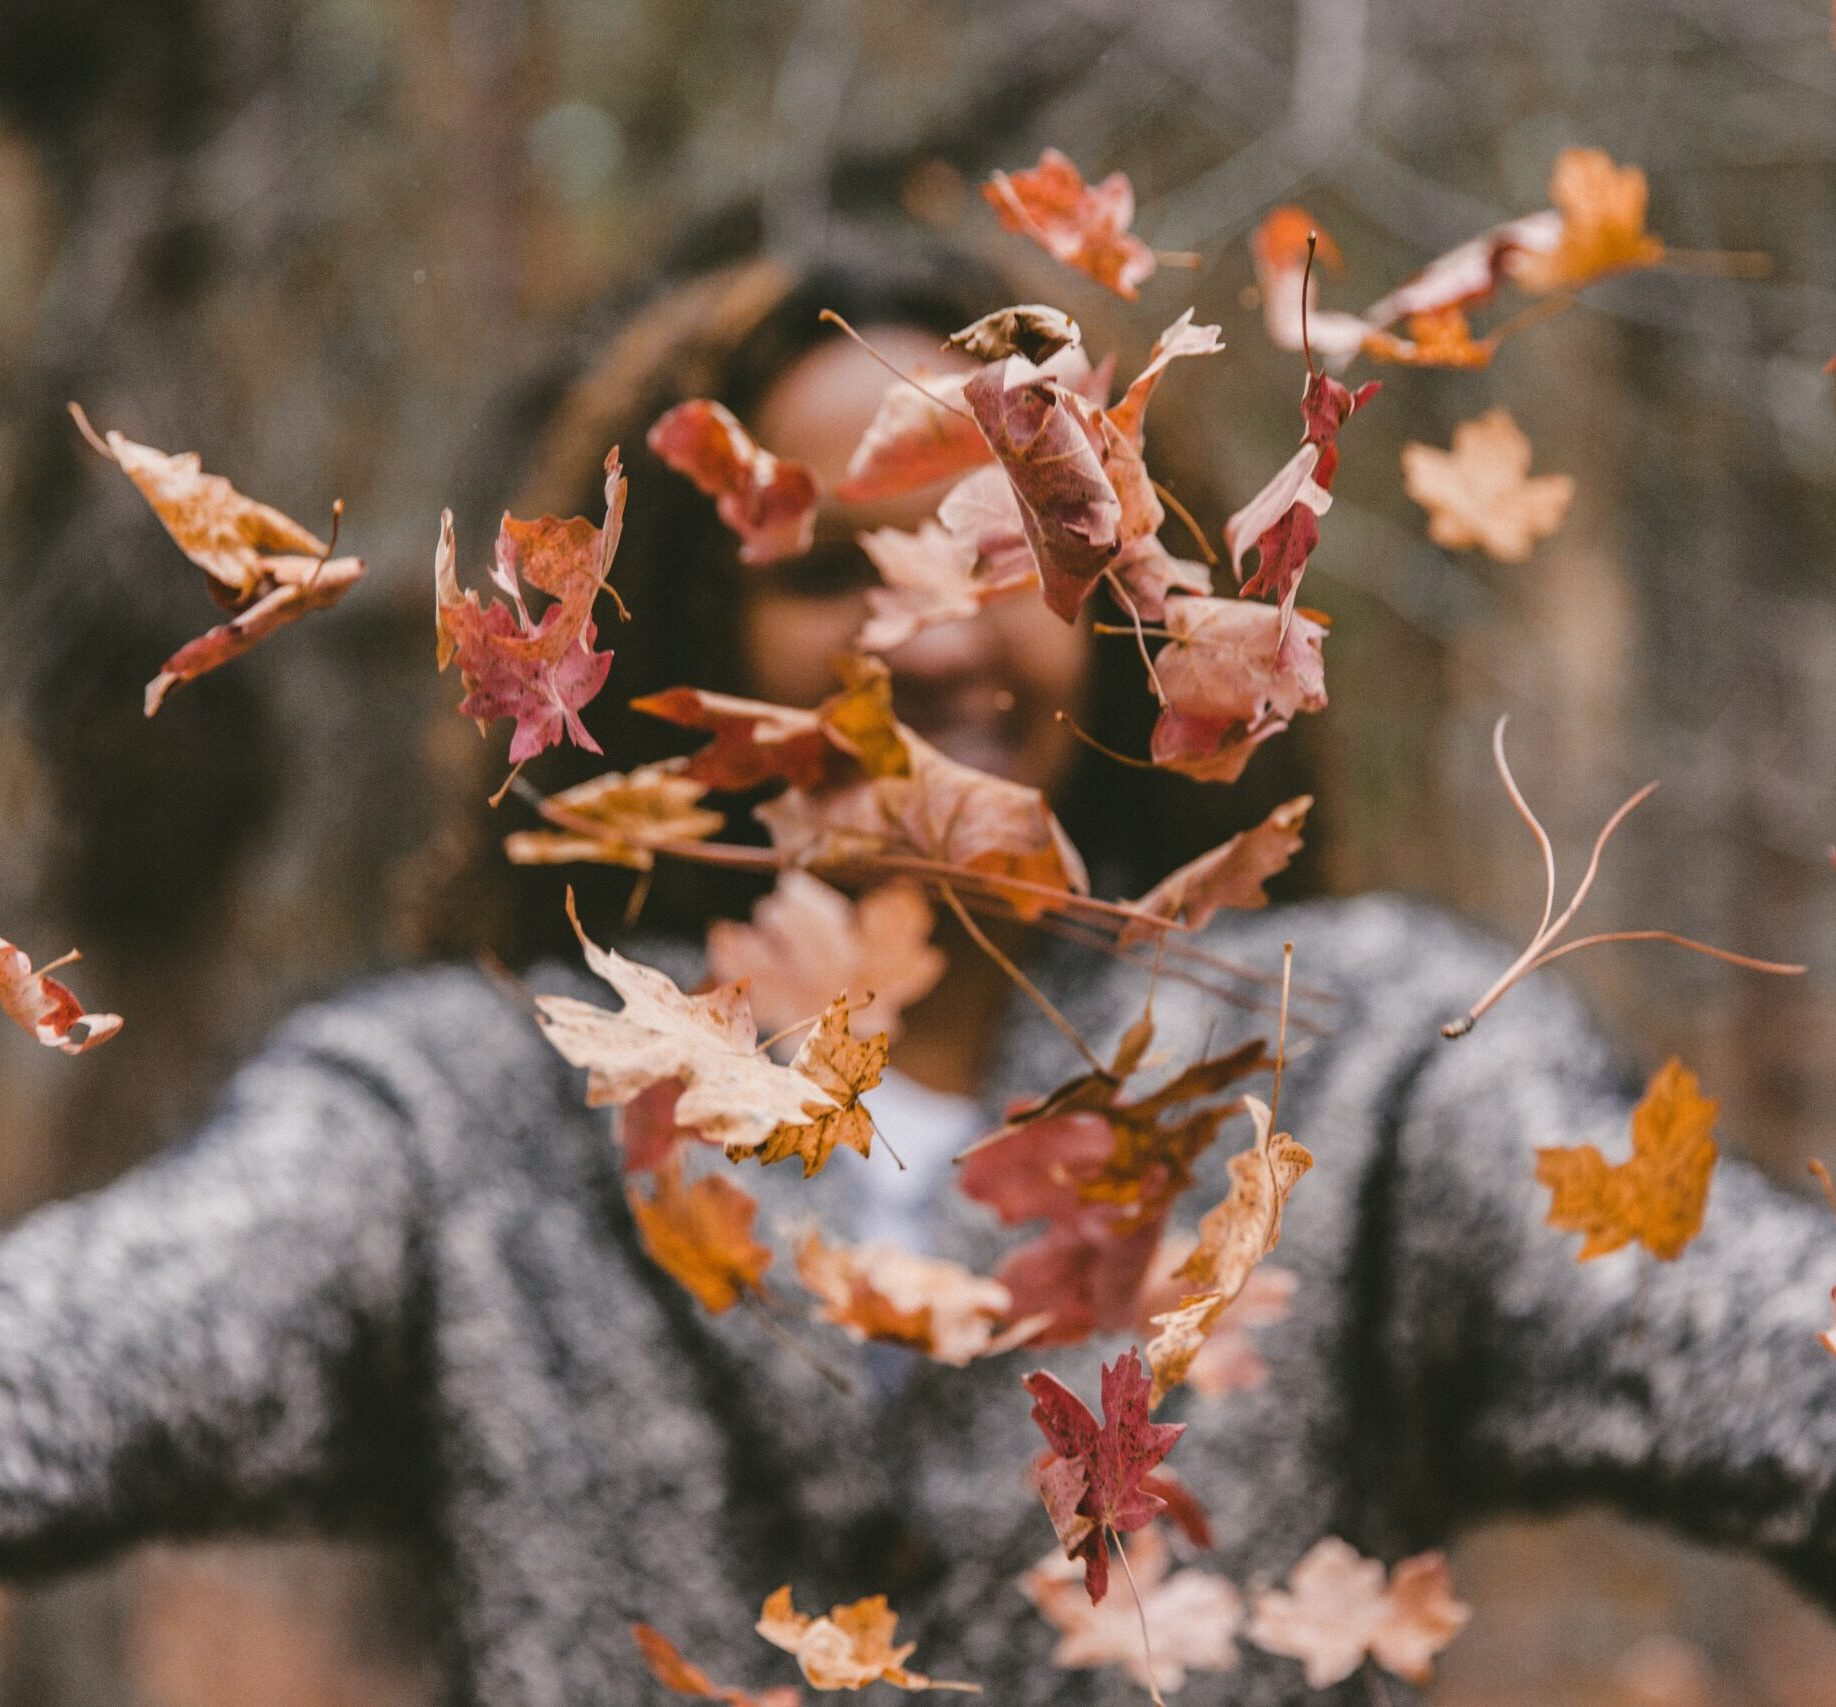 happy person throwing fall leaves in air